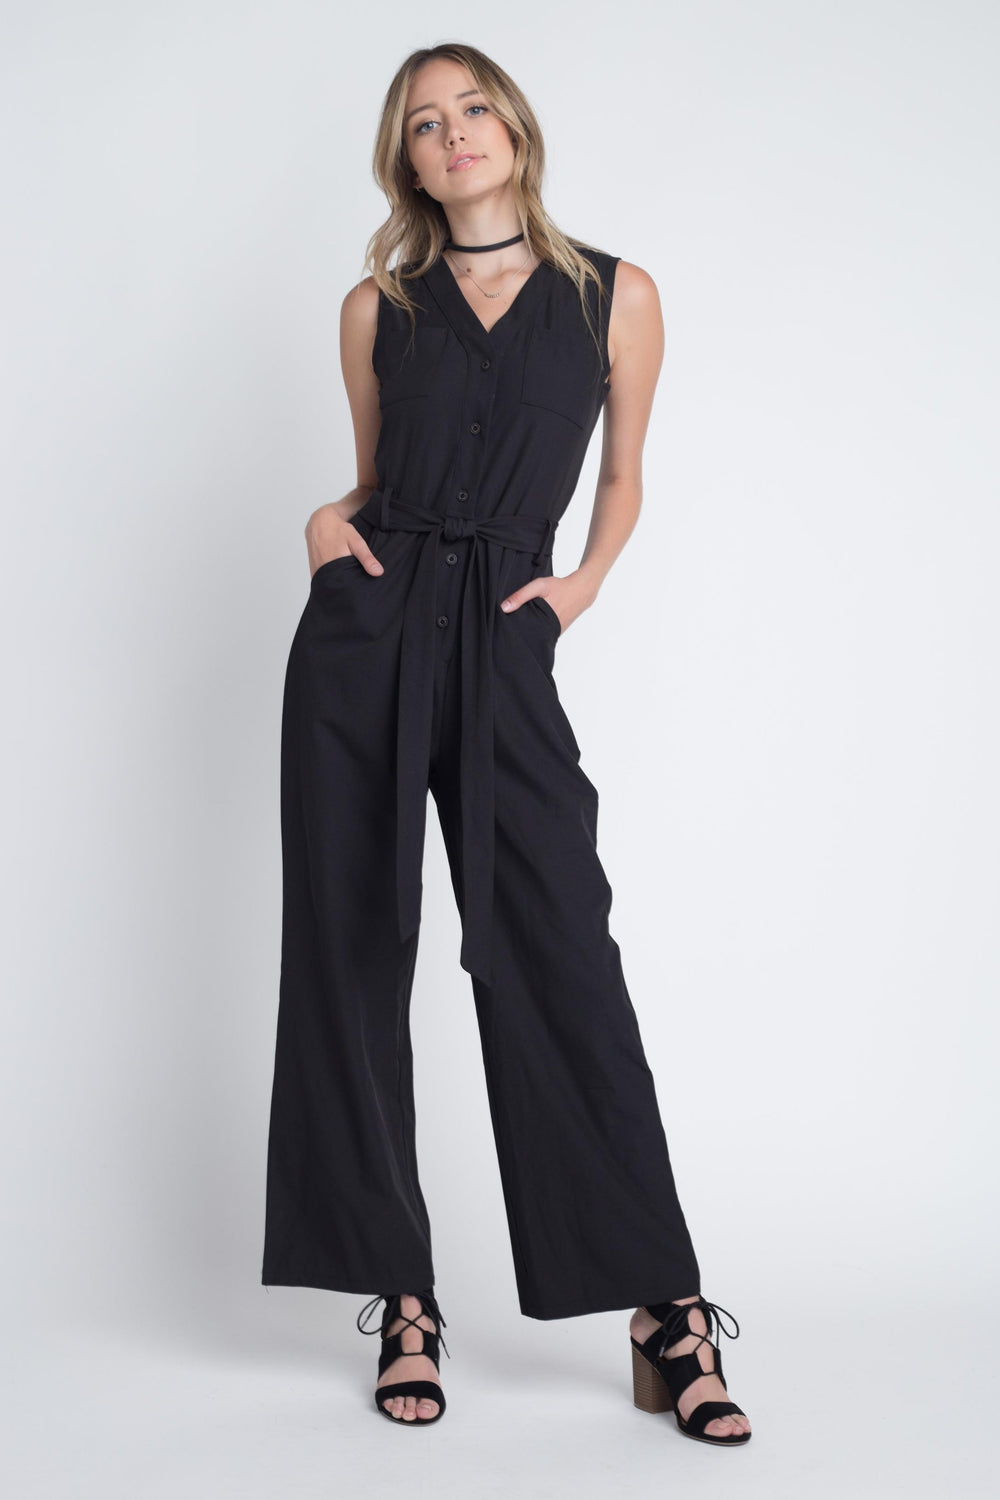 Women's Tie Sleeveless Buttoned Jumpsuit